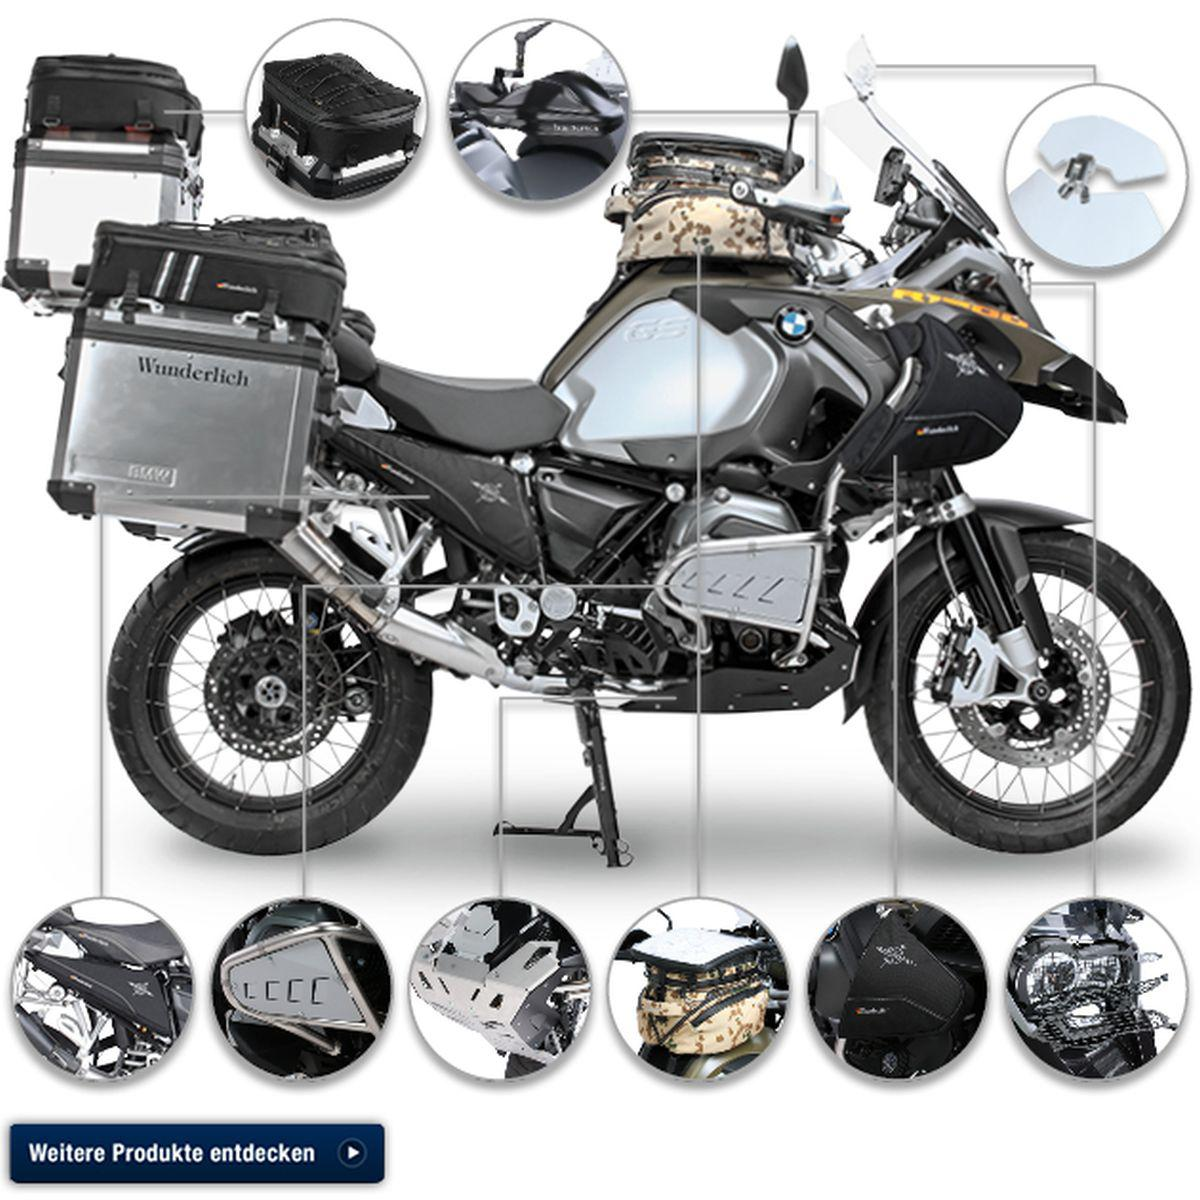 wunderlich 1200gs adv motorrad news. Black Bedroom Furniture Sets. Home Design Ideas